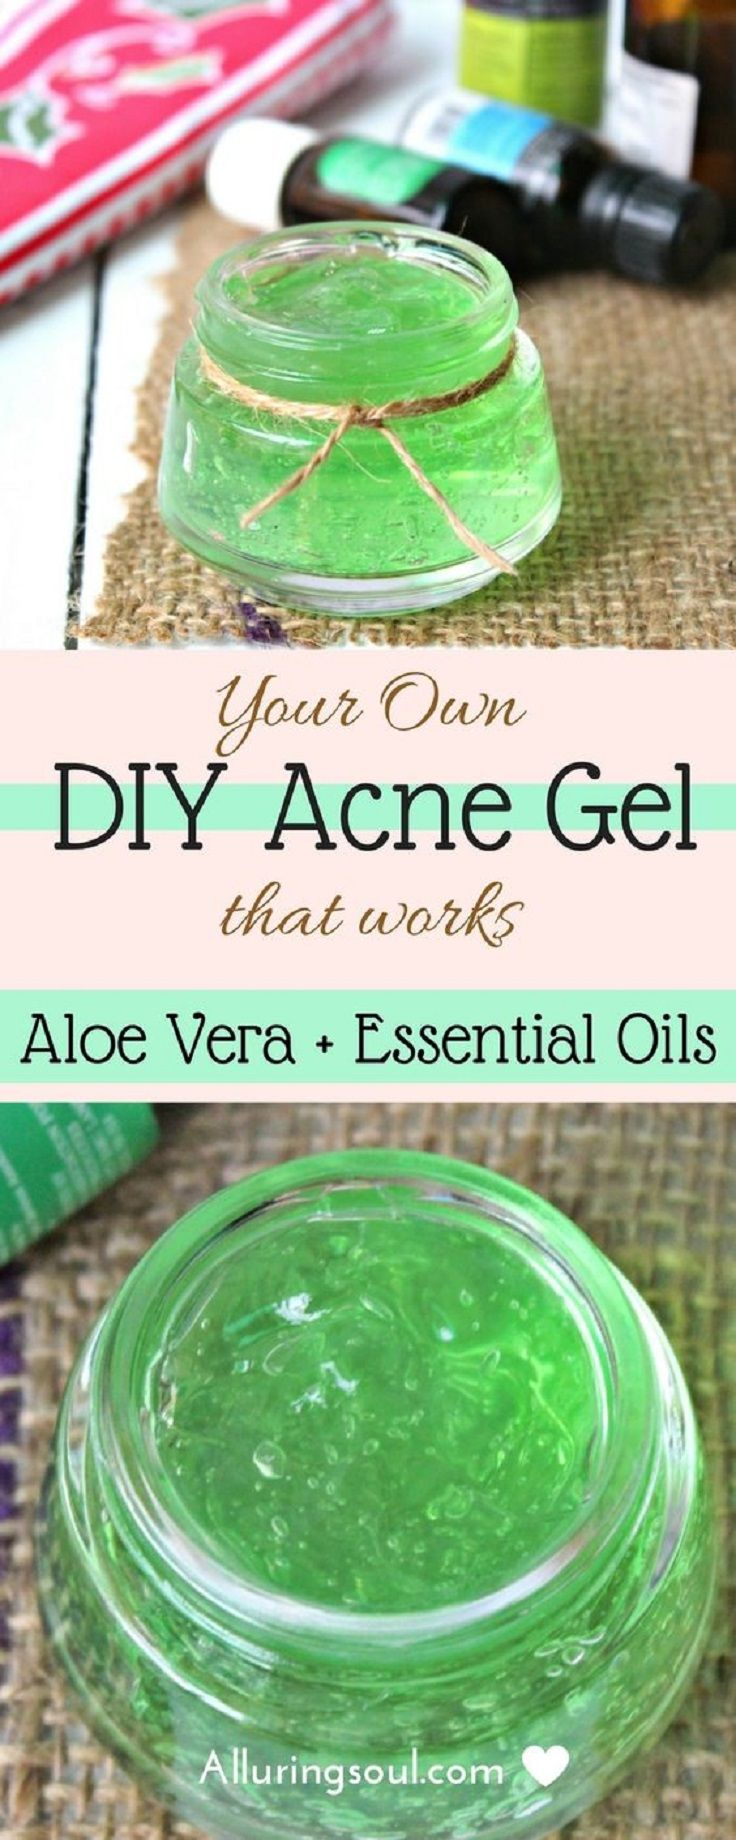 Aloe Vera and Essential Oil DIY Acne Gel That Works  16 MustHave DIY Beauty Recipes To Keep You Beautiful All Year Long